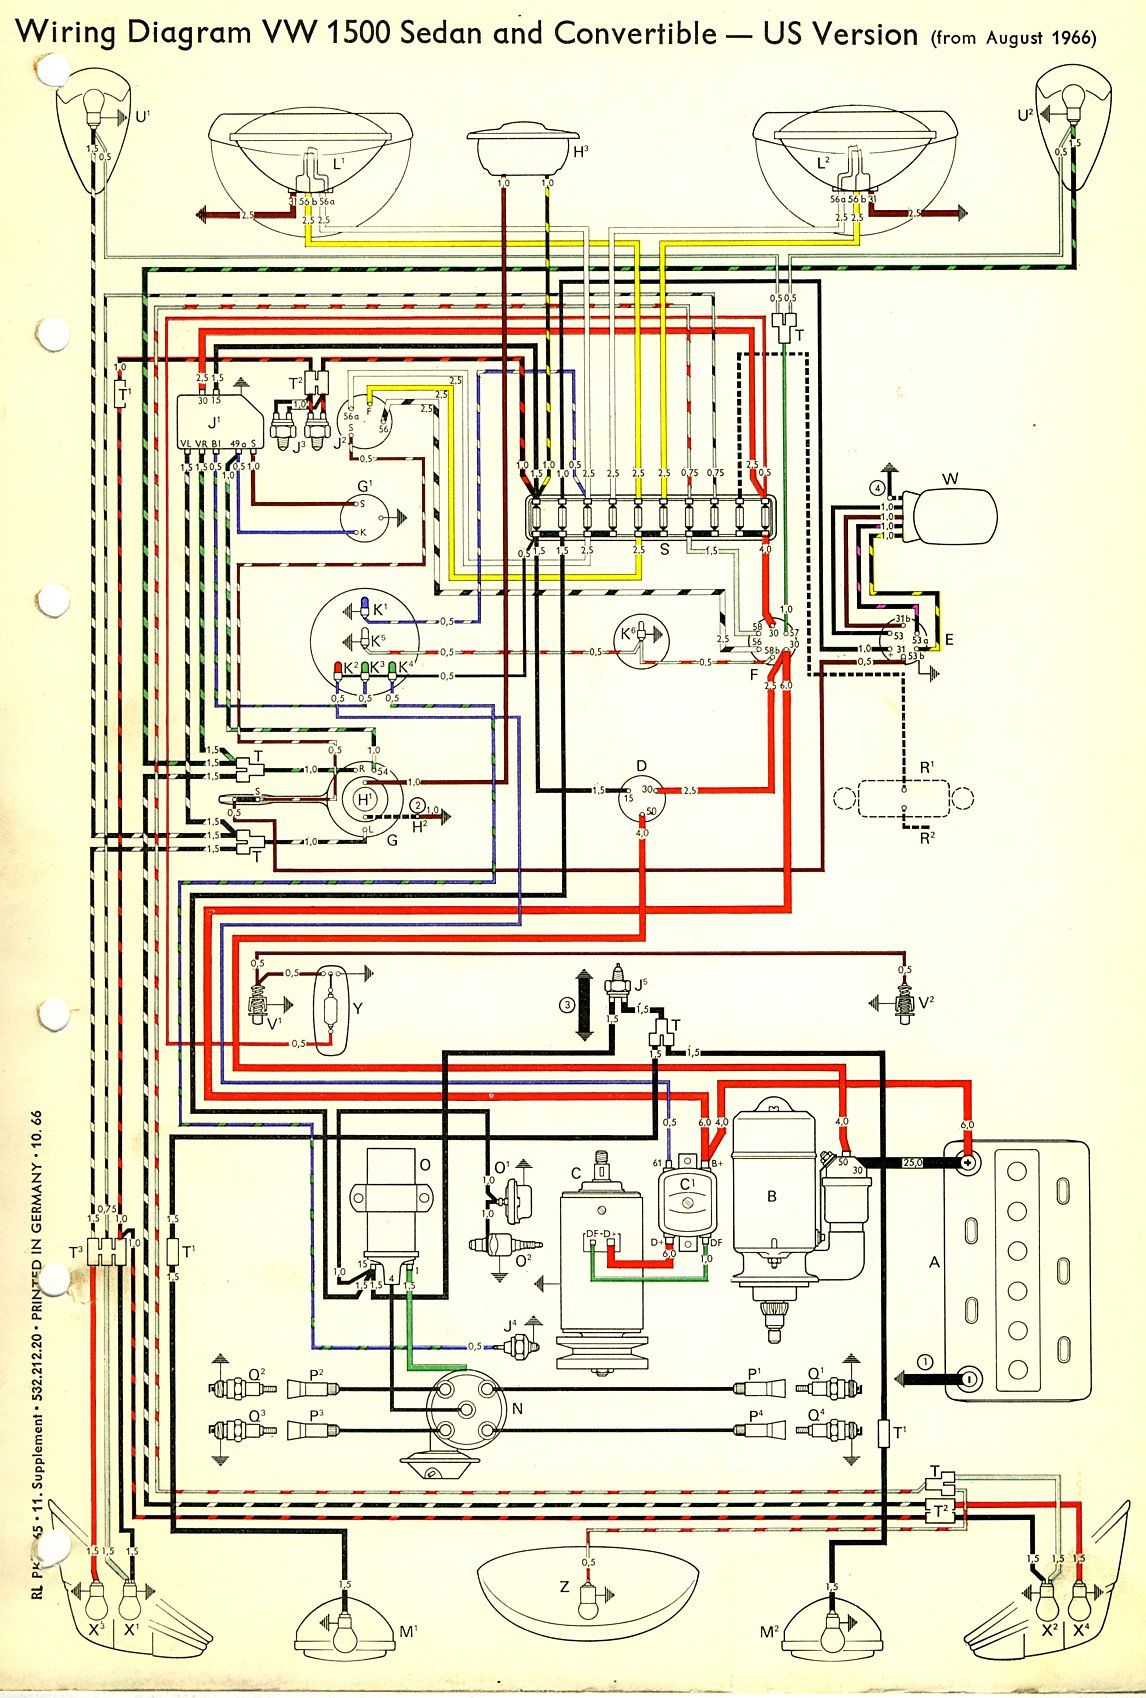 1963 vw wiring diagram, vw beetle fuel injection diagram, 1999 vw passat wiring diagram, 1967 vw wiring diagram, 1974 vw engine diagram, alfa romeo spider wiring diagram, vw rabbit wiring-diagram, vw turn signal wiring diagram, vw distributor diagram, fiat uno wiring diagram, vw buggy wiring-diagram, volkswagen fuel diagram, 1973 vw wiring diagram, porsche cayenne wiring diagram, vw starter wiring diagram, vw type 2 wiring diagram, vw beetle engine diagram, 68 vw wiring diagram, type 3 wiring diagram, vw light switch wiring, on vw beetle charging system wiring diagram